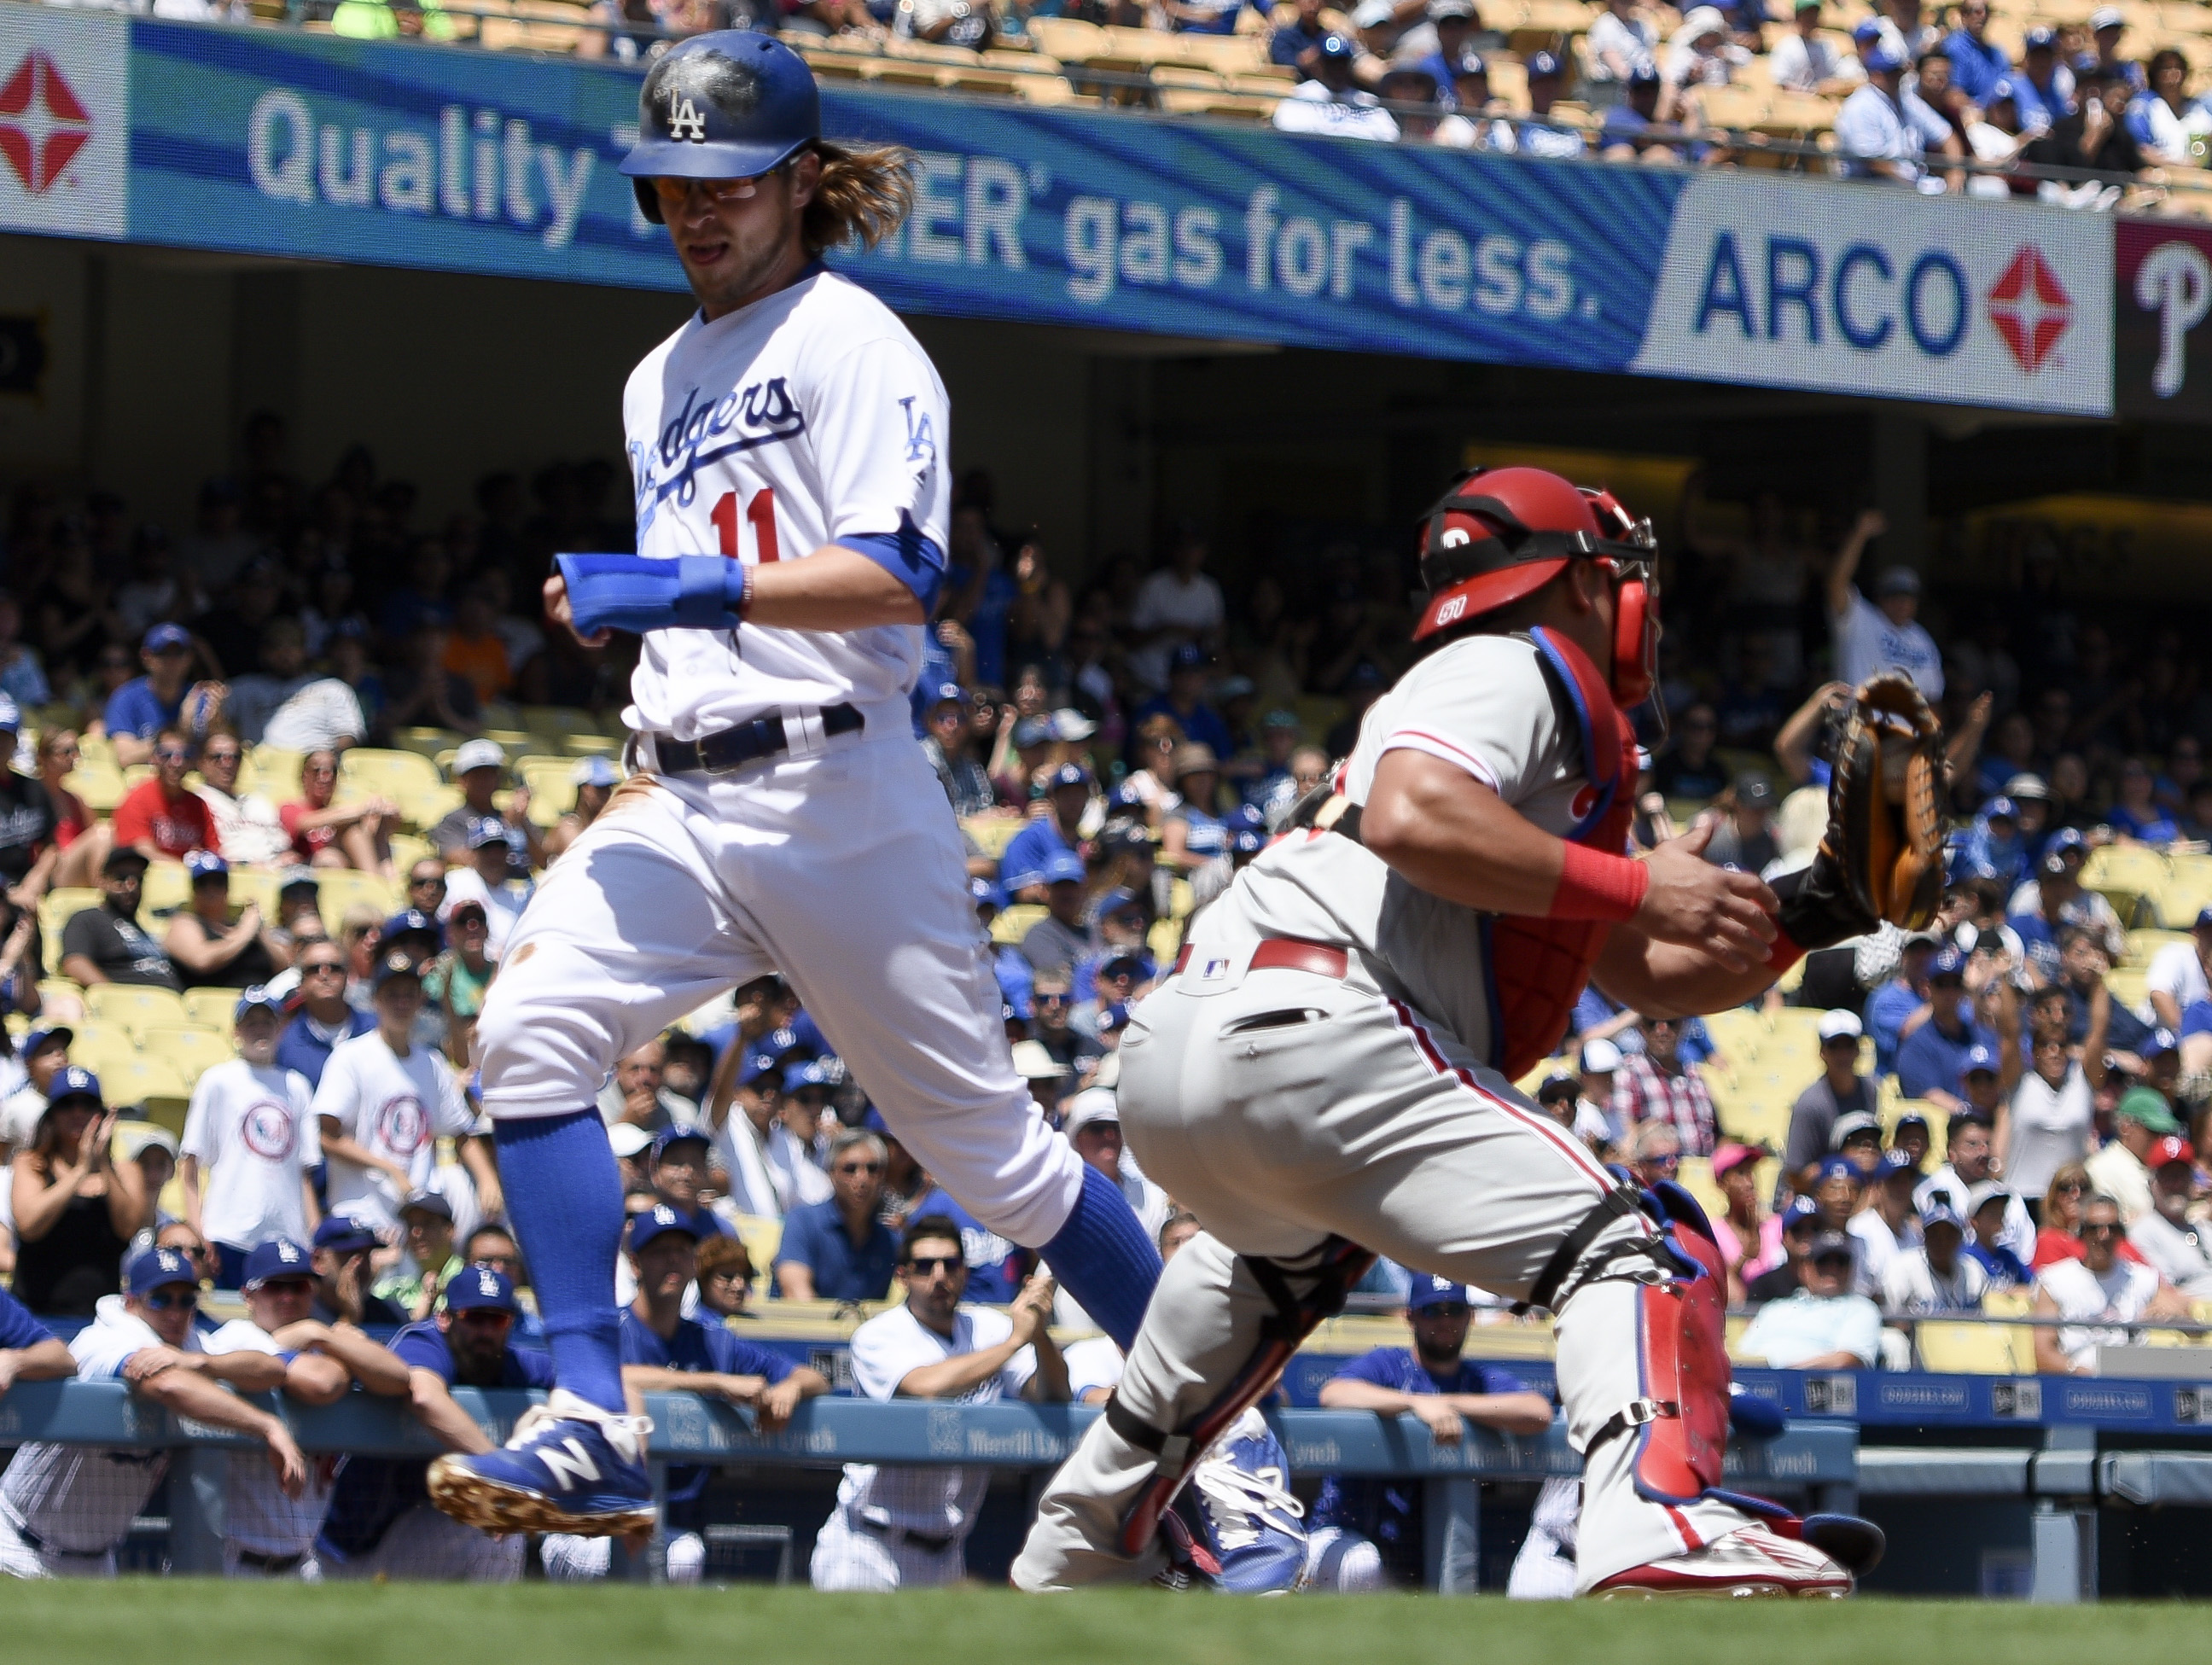 Los Angeles Dodgers' Josh Reddick, left, scores a run ahead of Philadelphia Phillies catcher Carlos Ruiz, right, off an RBI double by Adrian Gonzalez, during the first inning of a baseball game in Los Angeles, Wednesday, Aug. 10, 2016. (AP Photo/Kelvin Ku